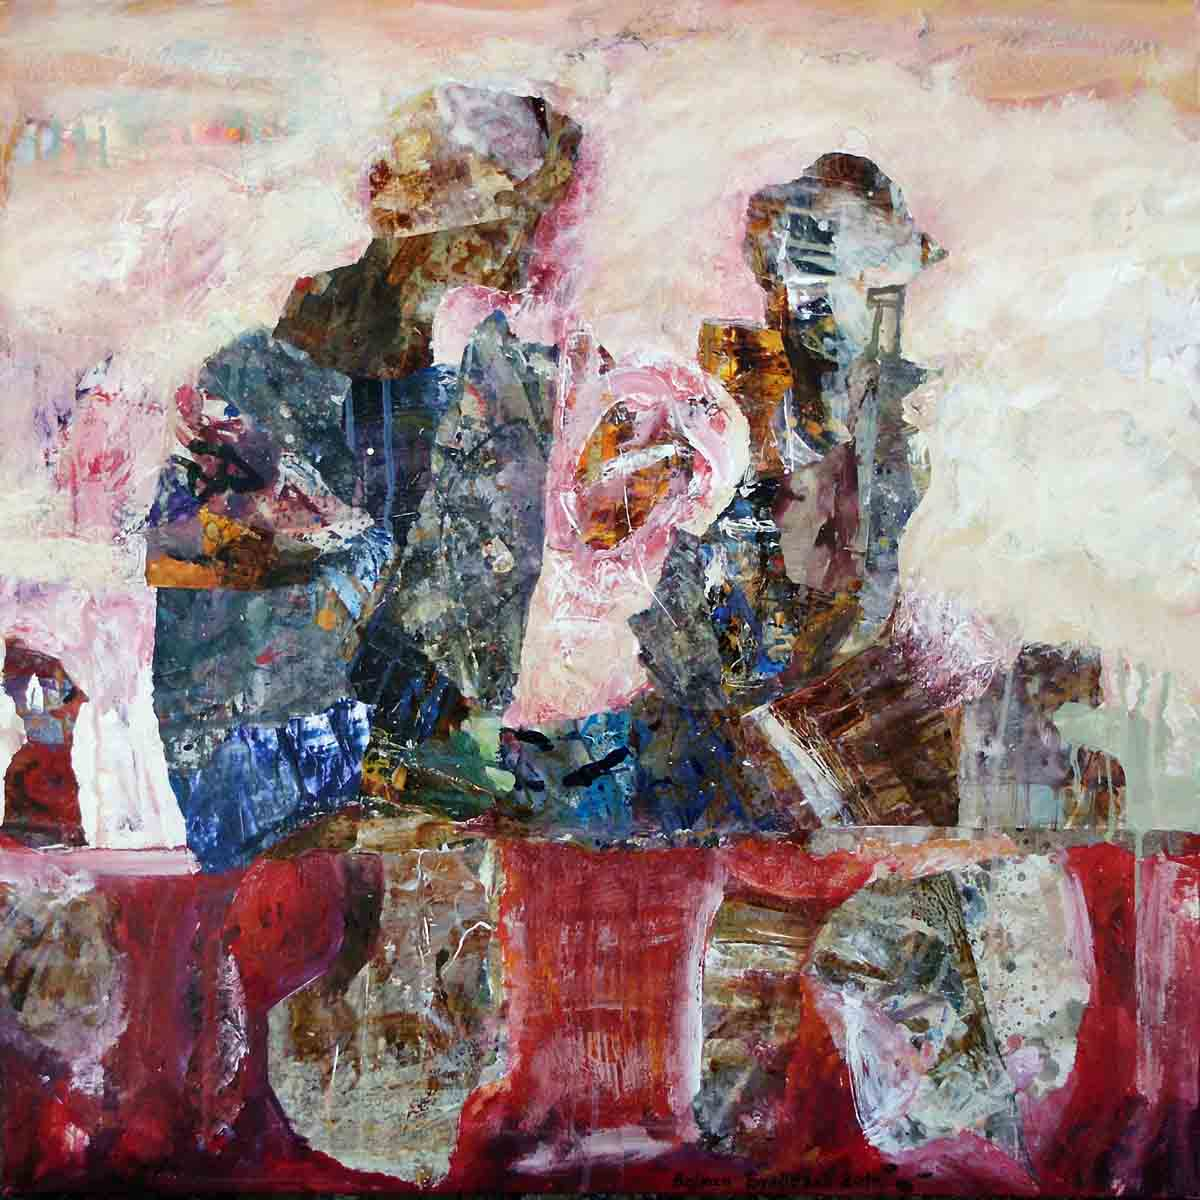 We Have Laid Our Prayers, 70x70, Collage & Mixed Media on Canvas